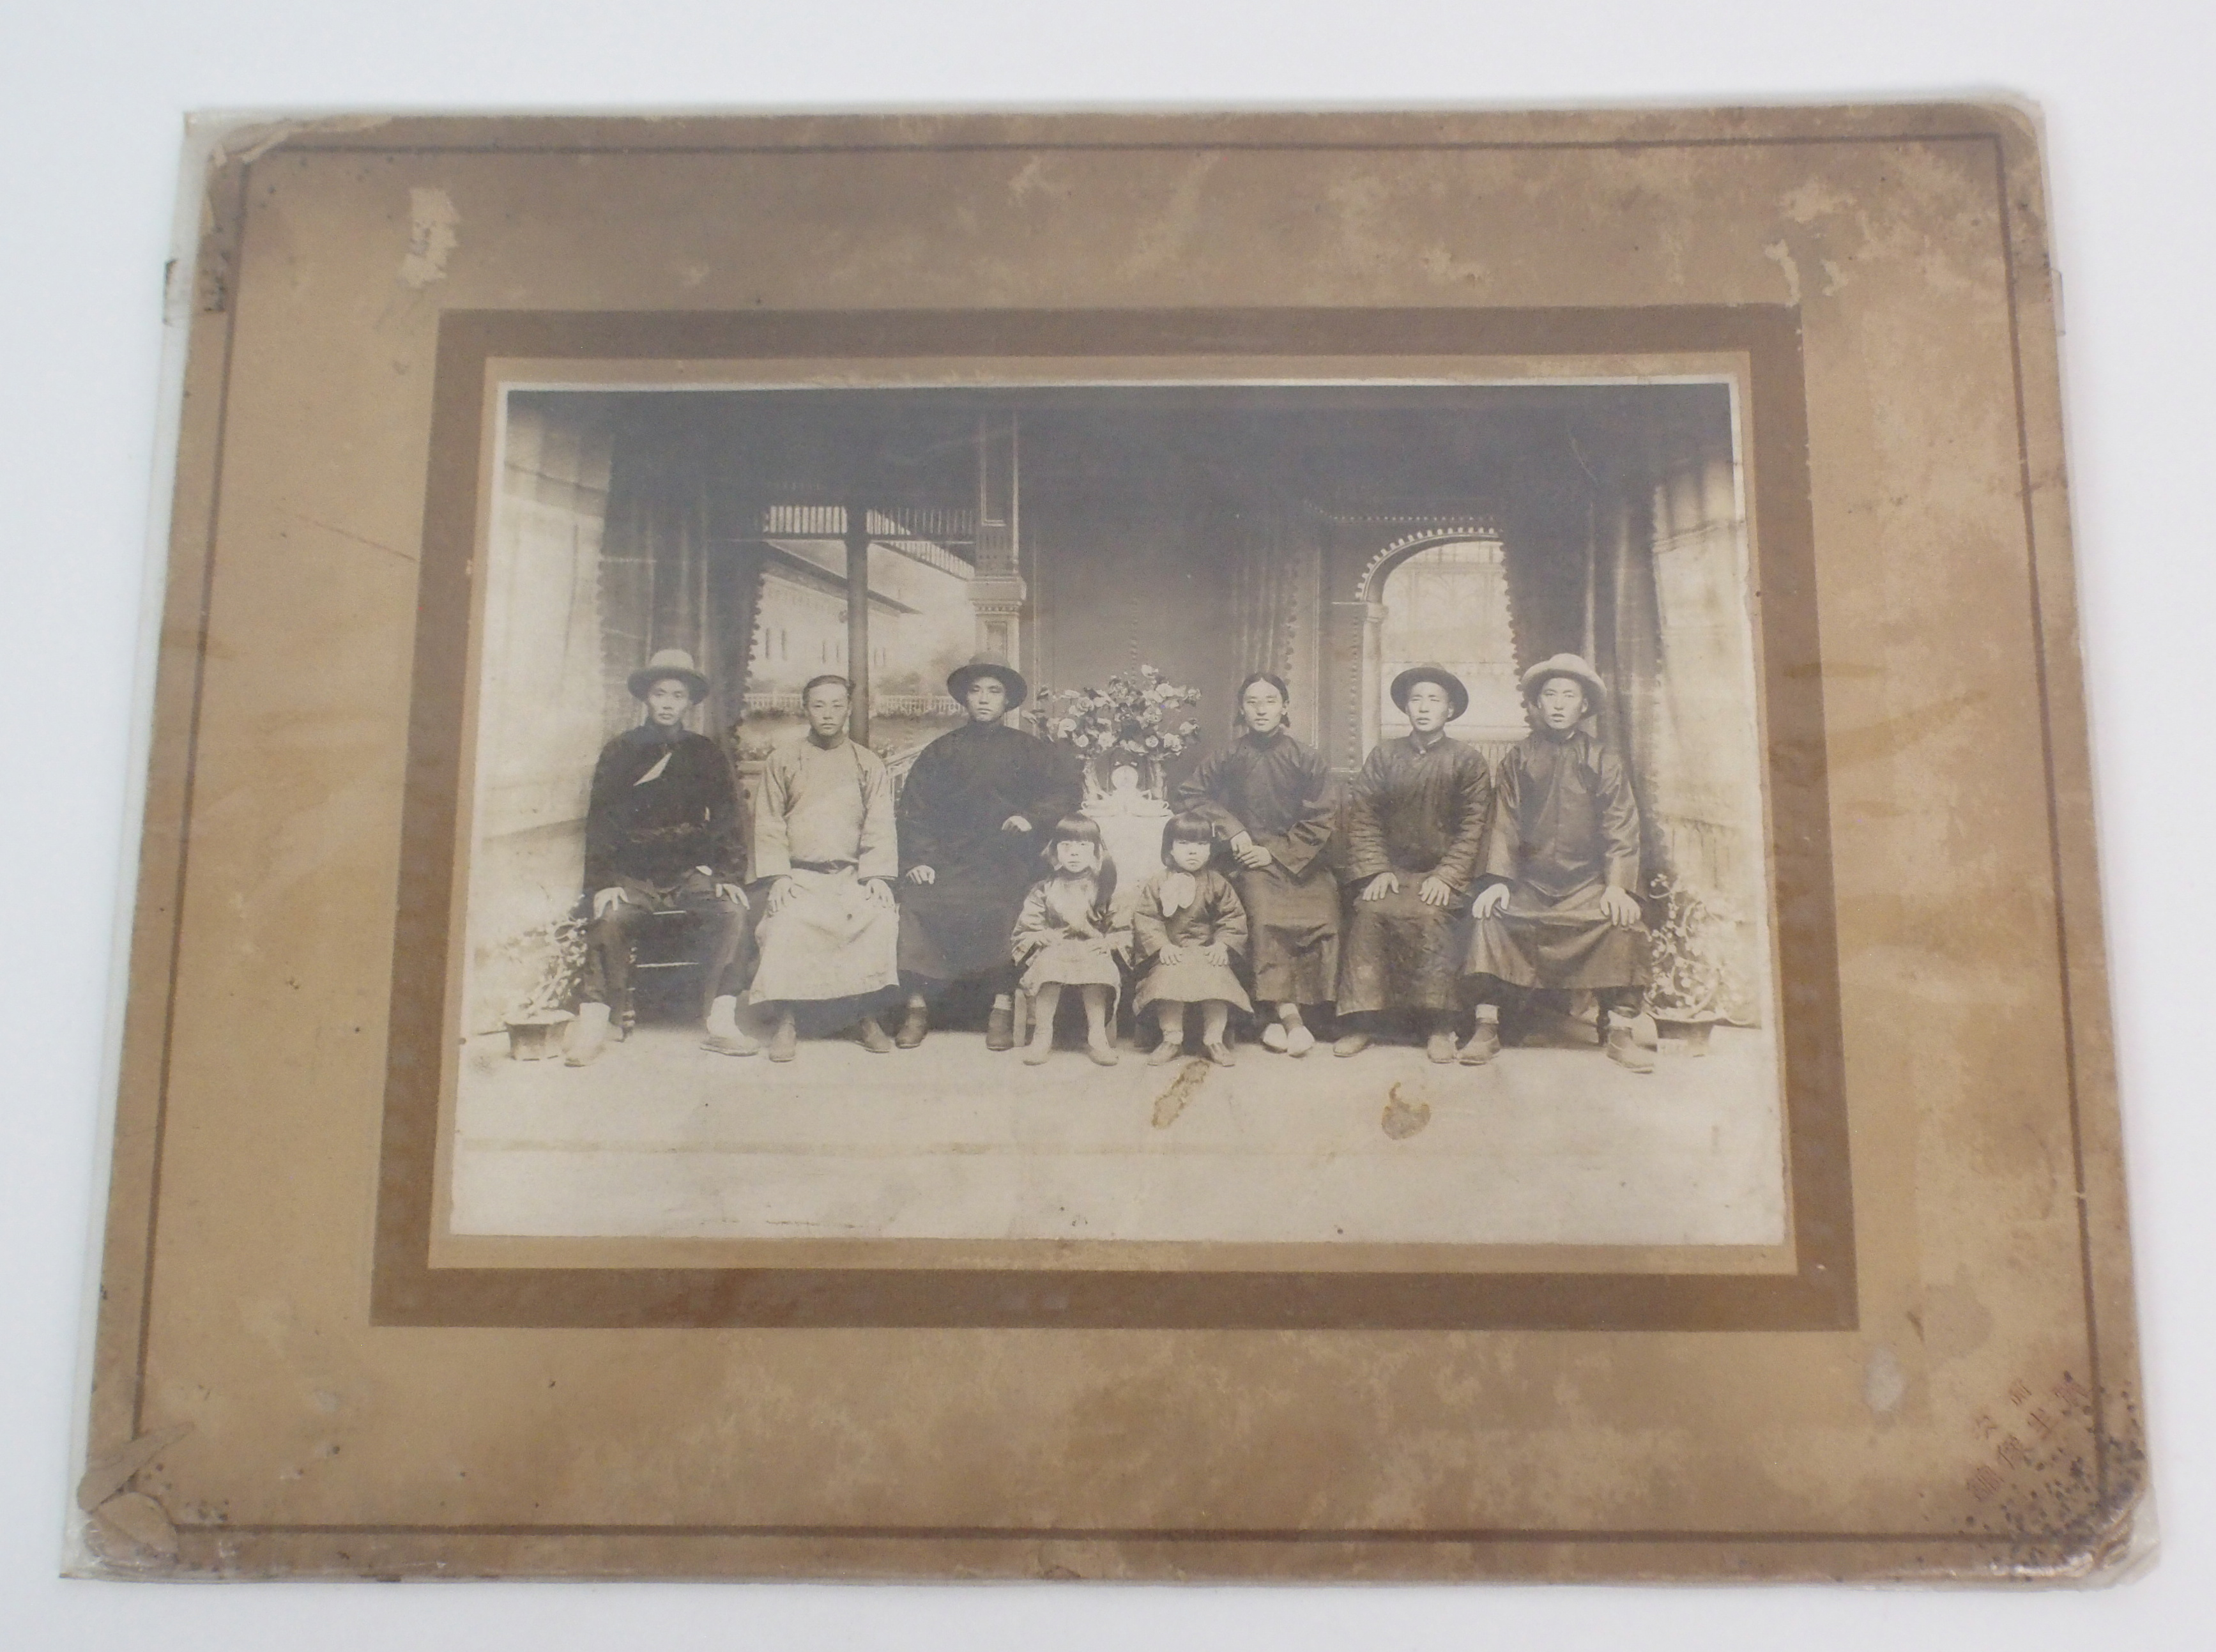 Lot 60 - A CHINESE PHOTOGRAPH OF A FAMILY GROUP with eight adults and two children in an interior, 14cm x